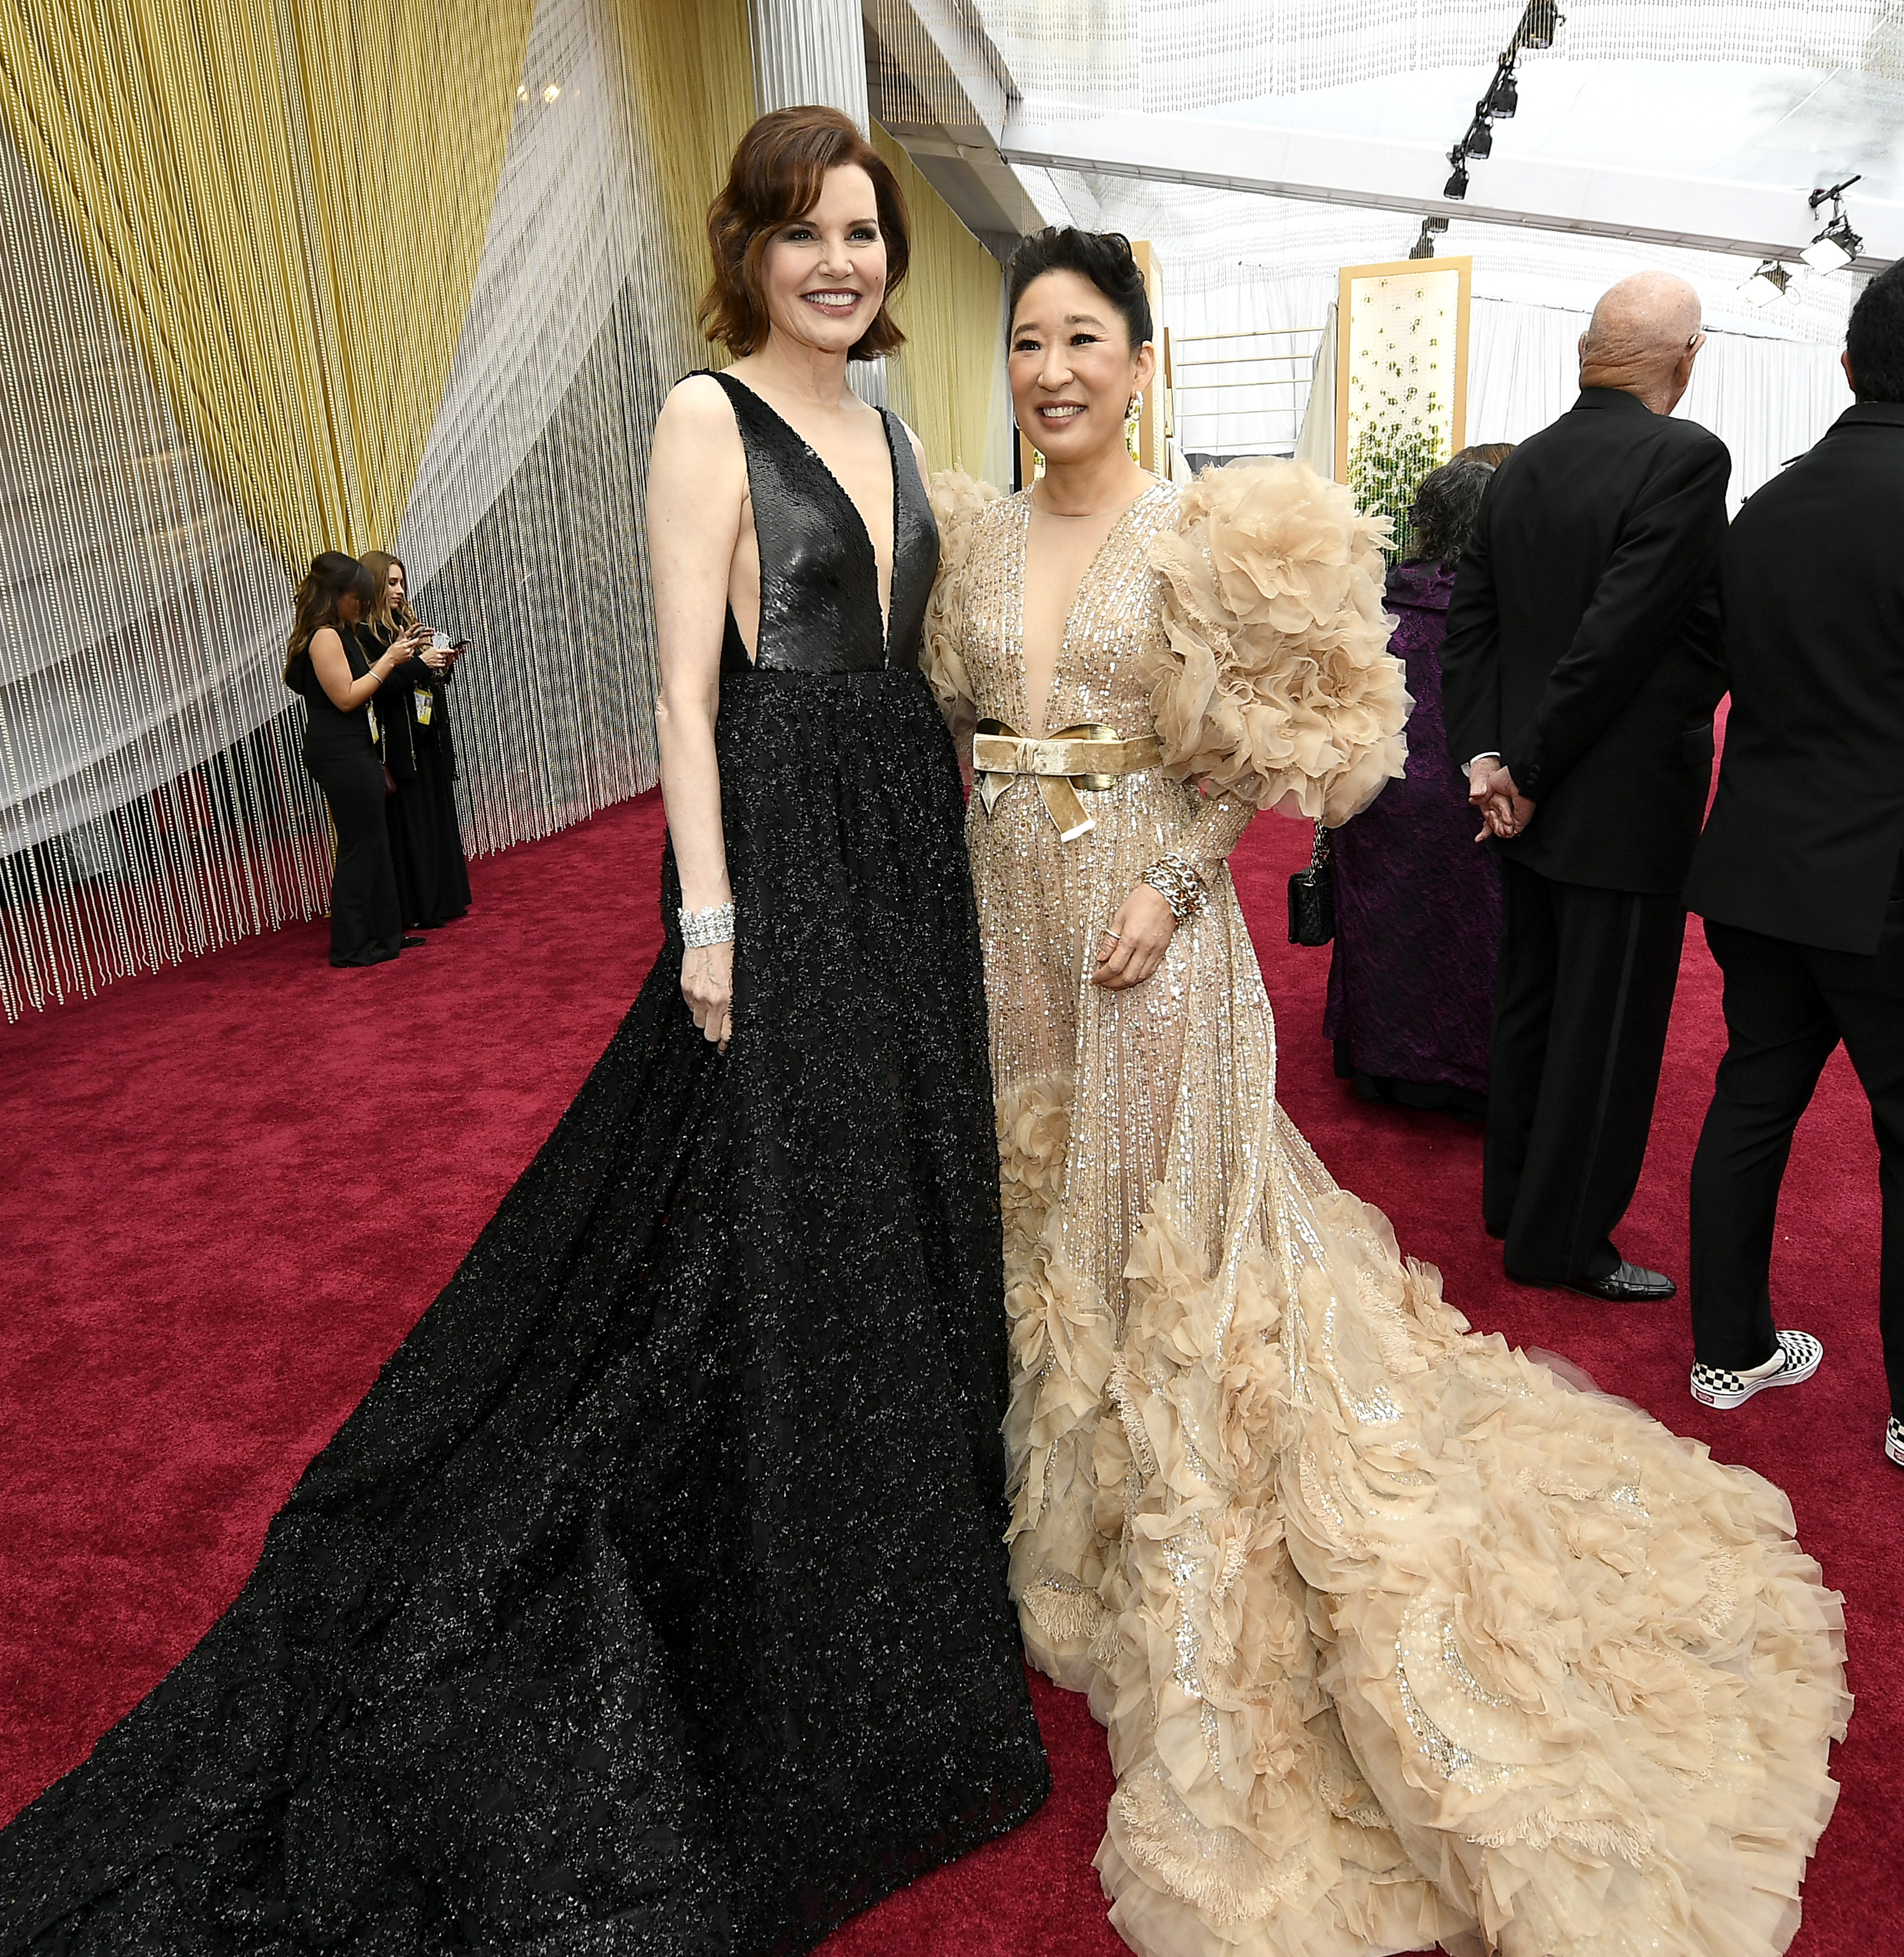 HOLLYWOOD, CALIFORNIA - FEBRUARY 09: (L-R) Geena Davis and Sandra Oh attend the 92nd Annual Academy Awards at Hollywood and Highland on February 09, 2020 in Hollywood, California. (Photo by Kevork Djansezian/Getty Images)